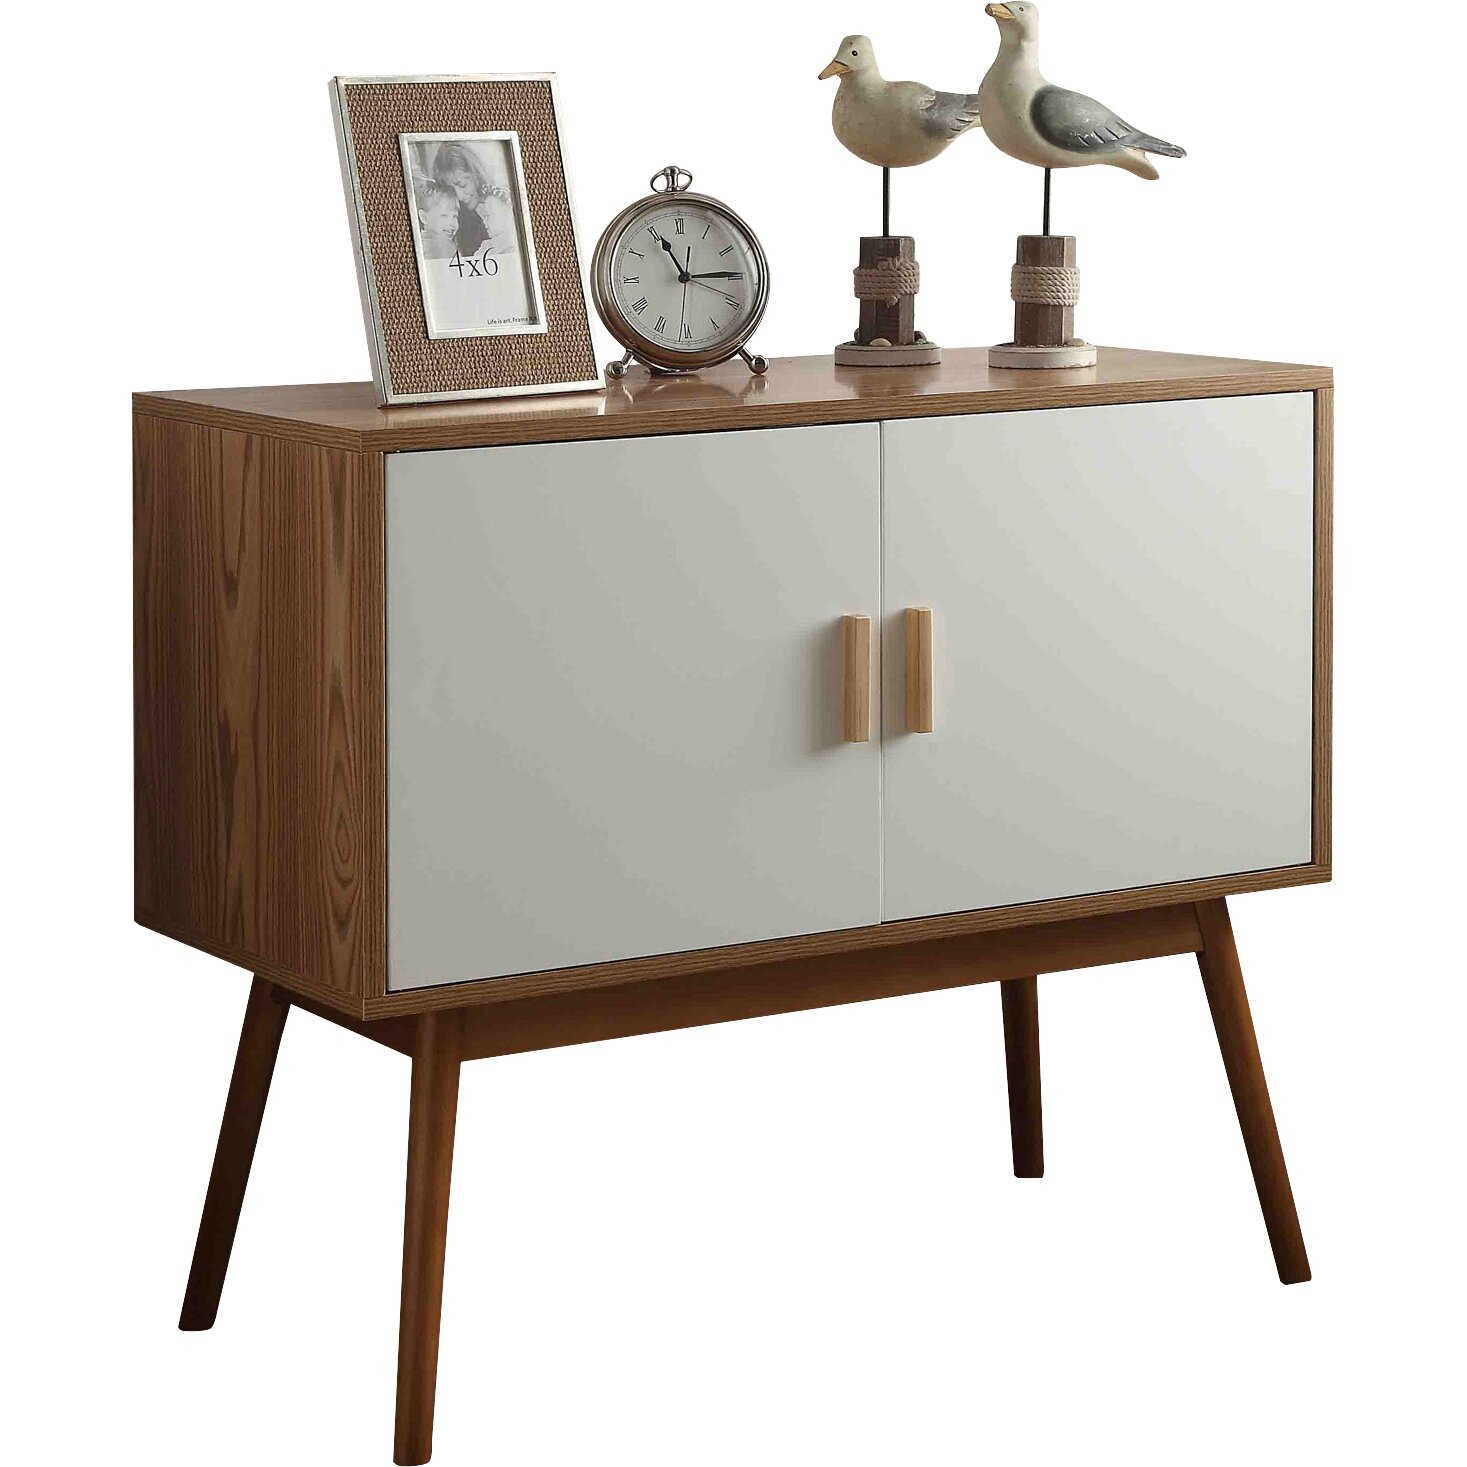 Convenience Concepts Oslo Console Table & Reviews  Wayfair. Pos Cash Register Drawer. Ergonomics Desk. Process Table. Craftsman Drawer. Brass End Tables. Hairpin Legs Coffee Table. All Glass Table. Amish Coffee Table